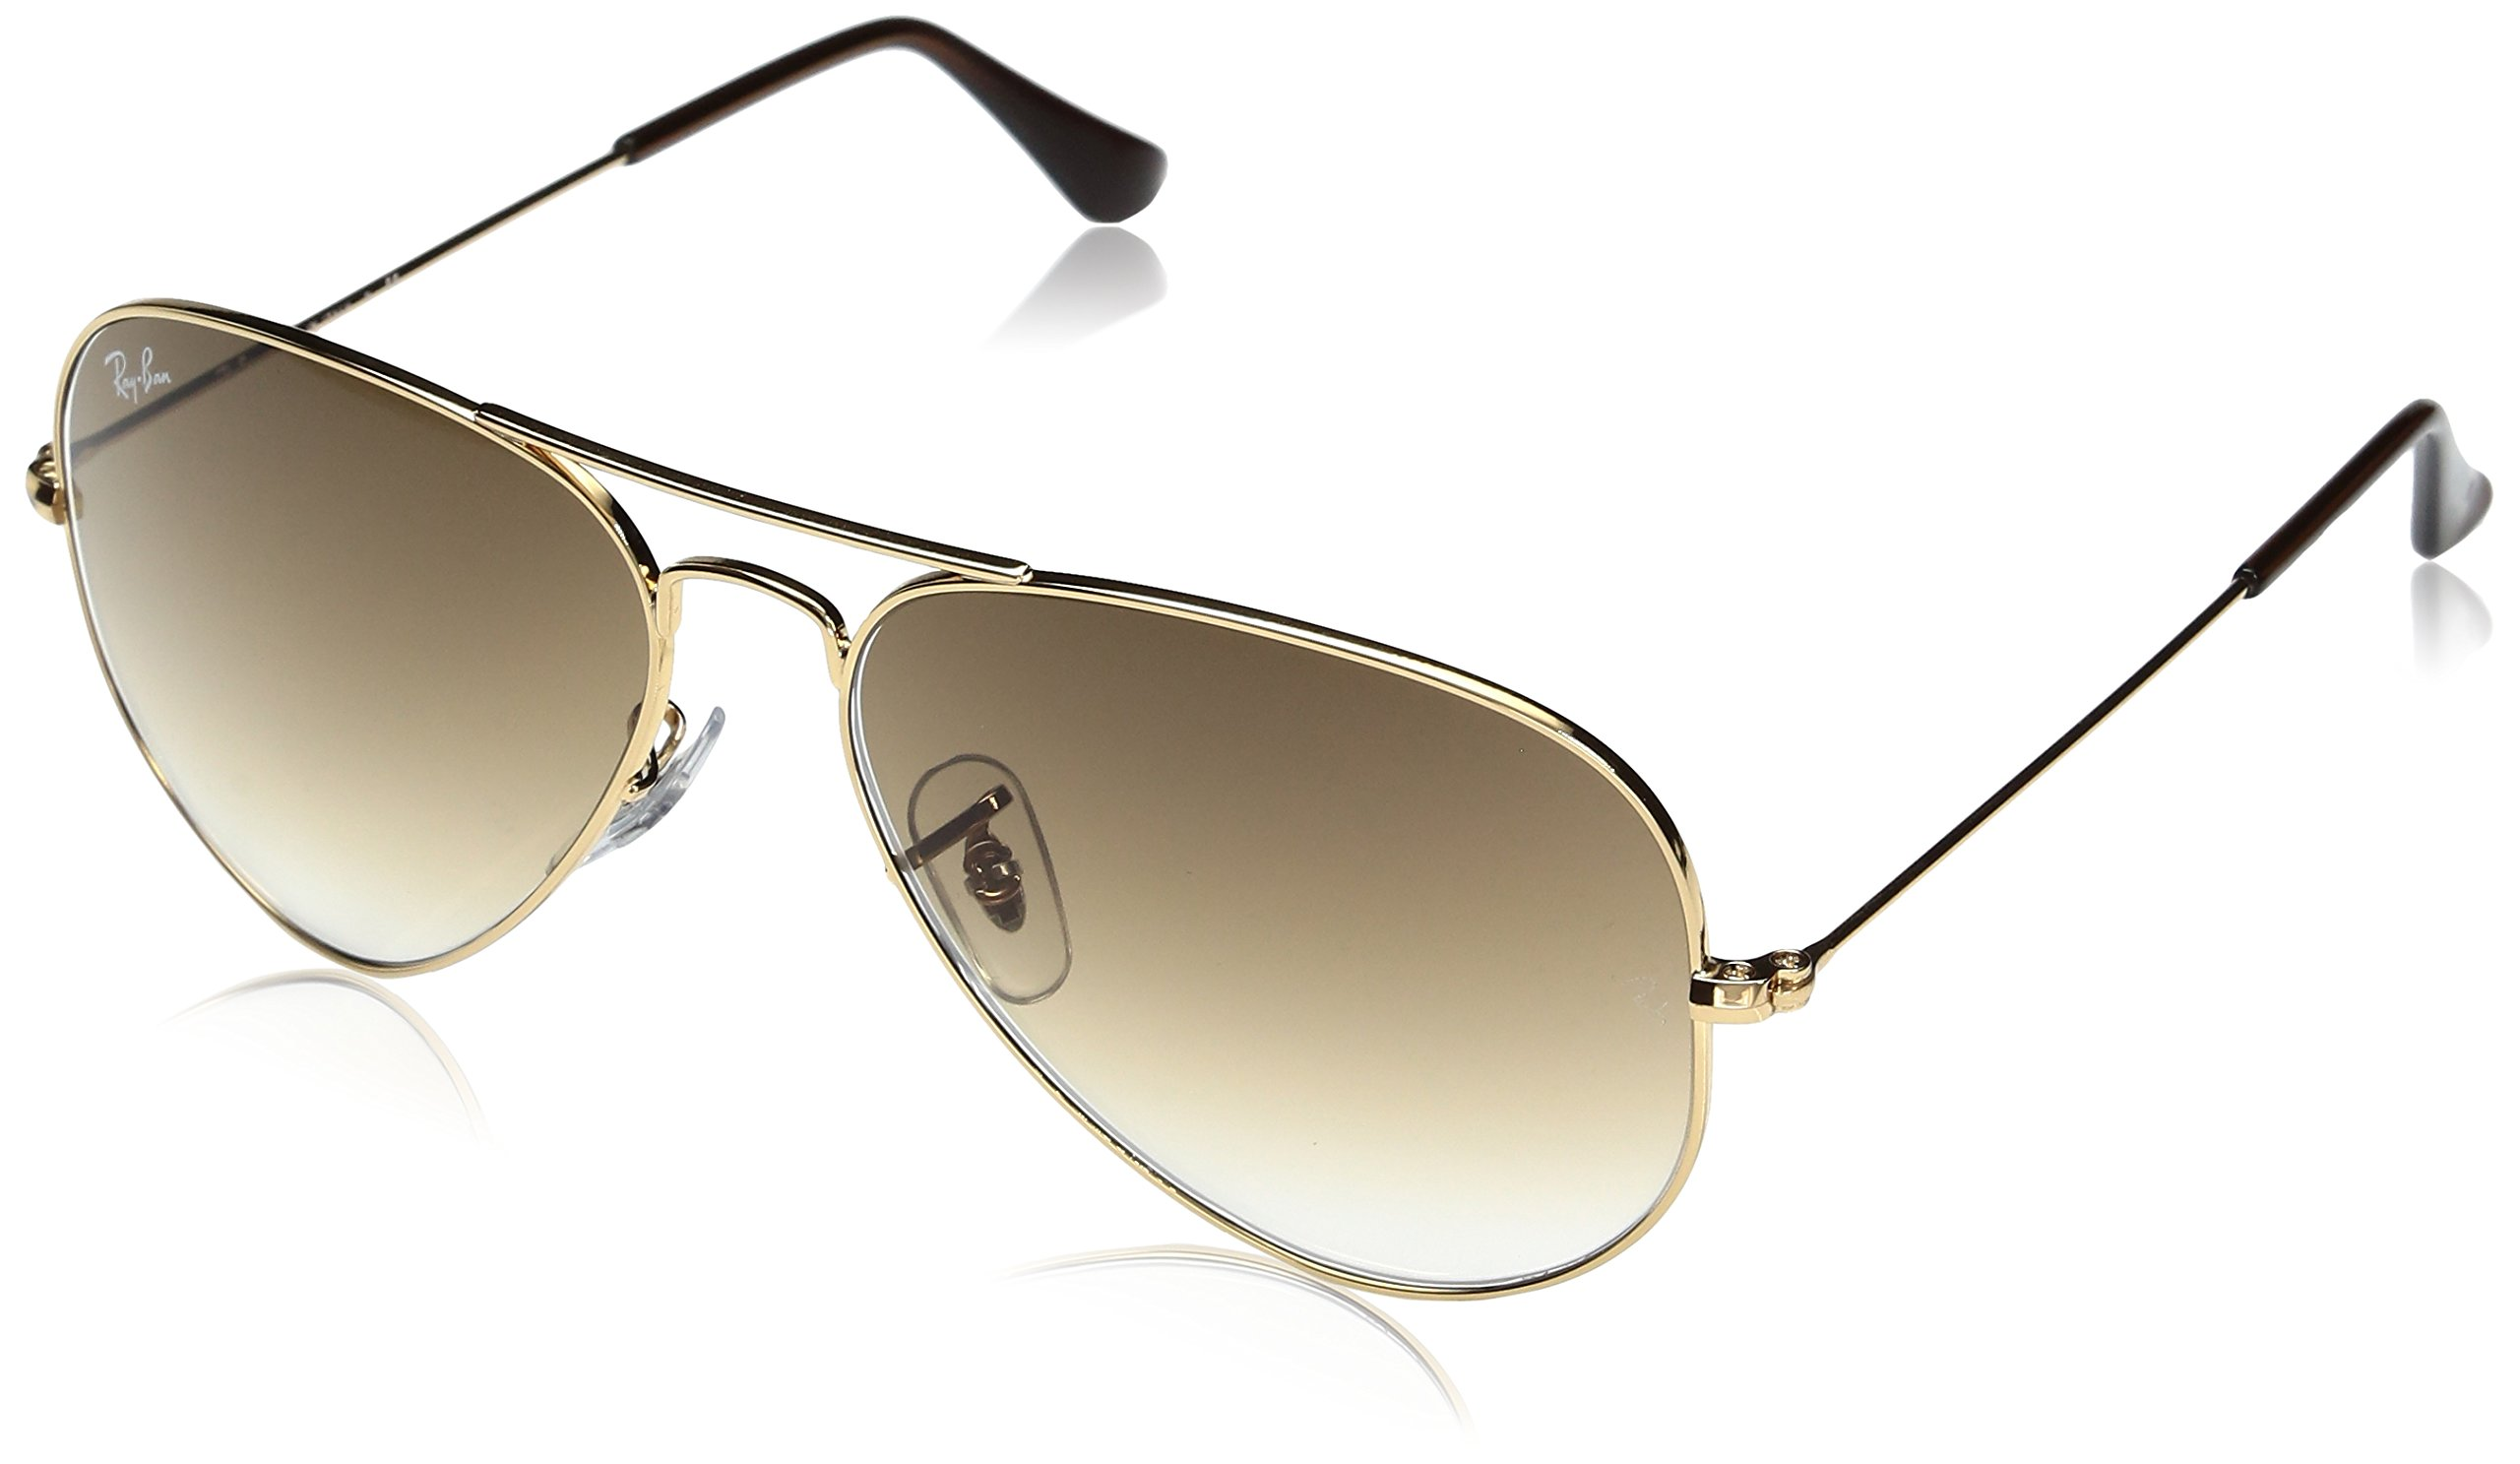 Ray-Ban Aviator Classic, Antique Gold/ Crystal Green, One Size by RAY-BAN